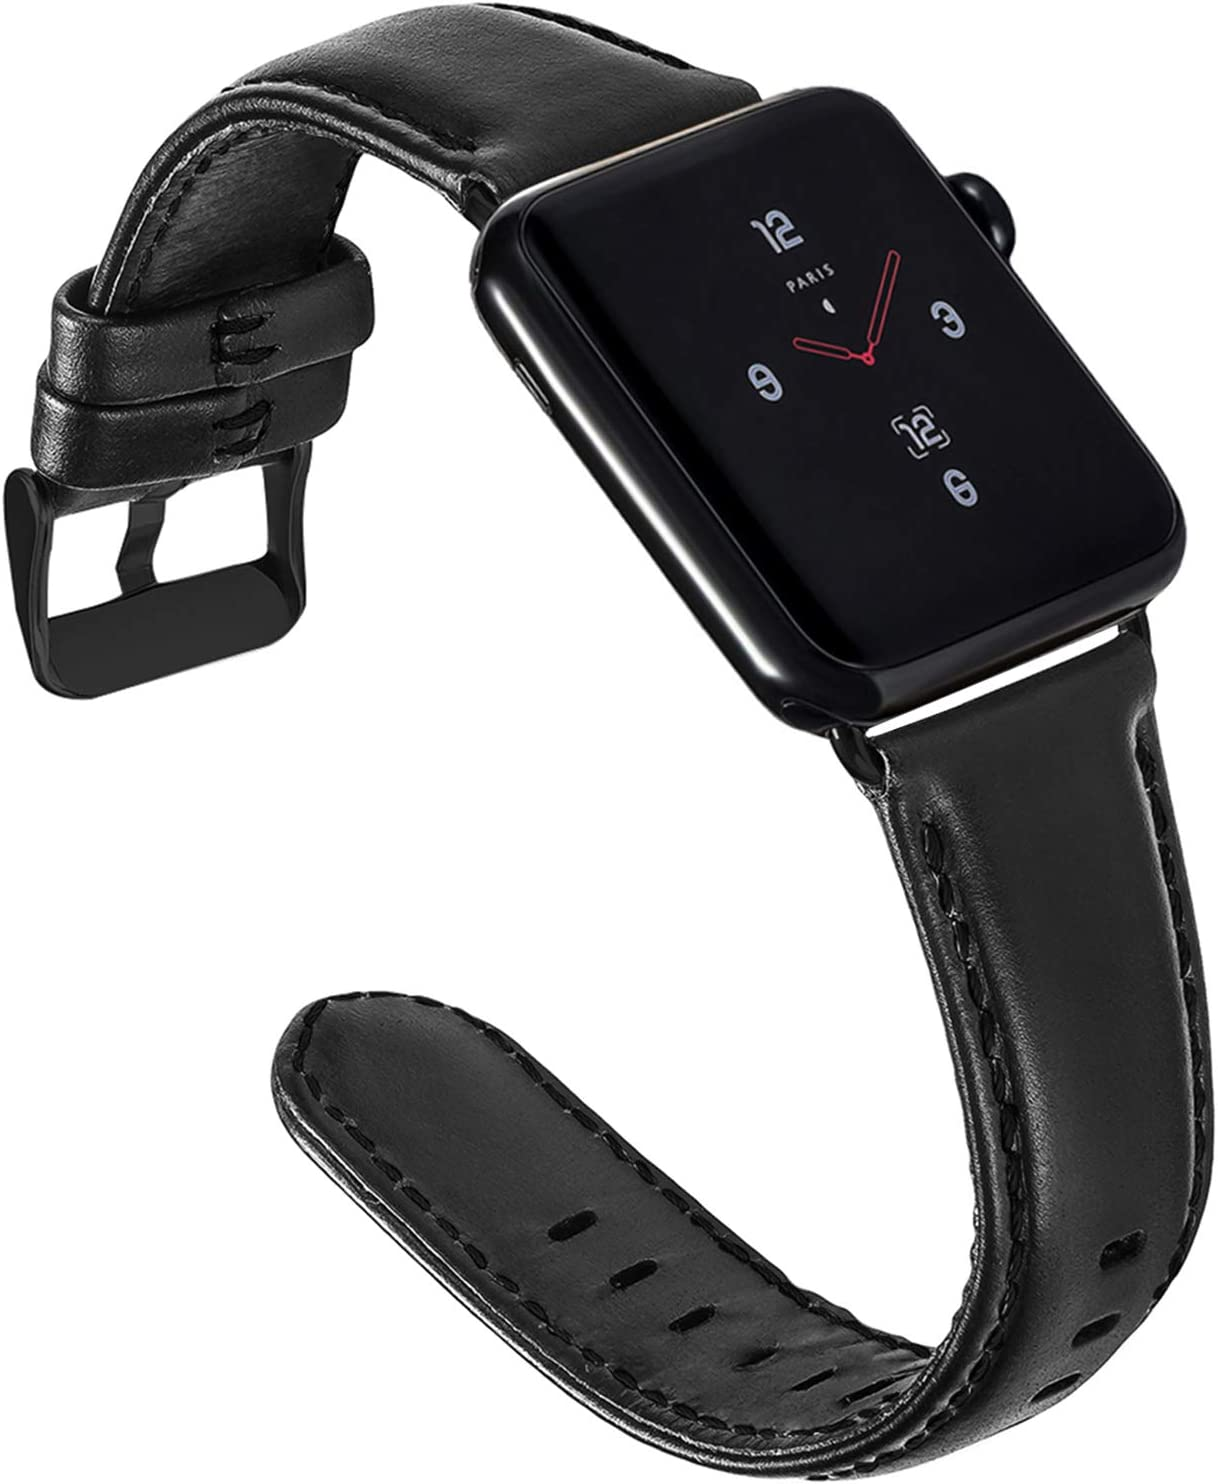 ALADRS Genuine Leather Watch Straps Compatible for Apple Watch Band 42mm 44mm, Wristbands Replacement for iWatch Series 6 5 4, SE (44mm) Series 3 2 1 (42mm), Black